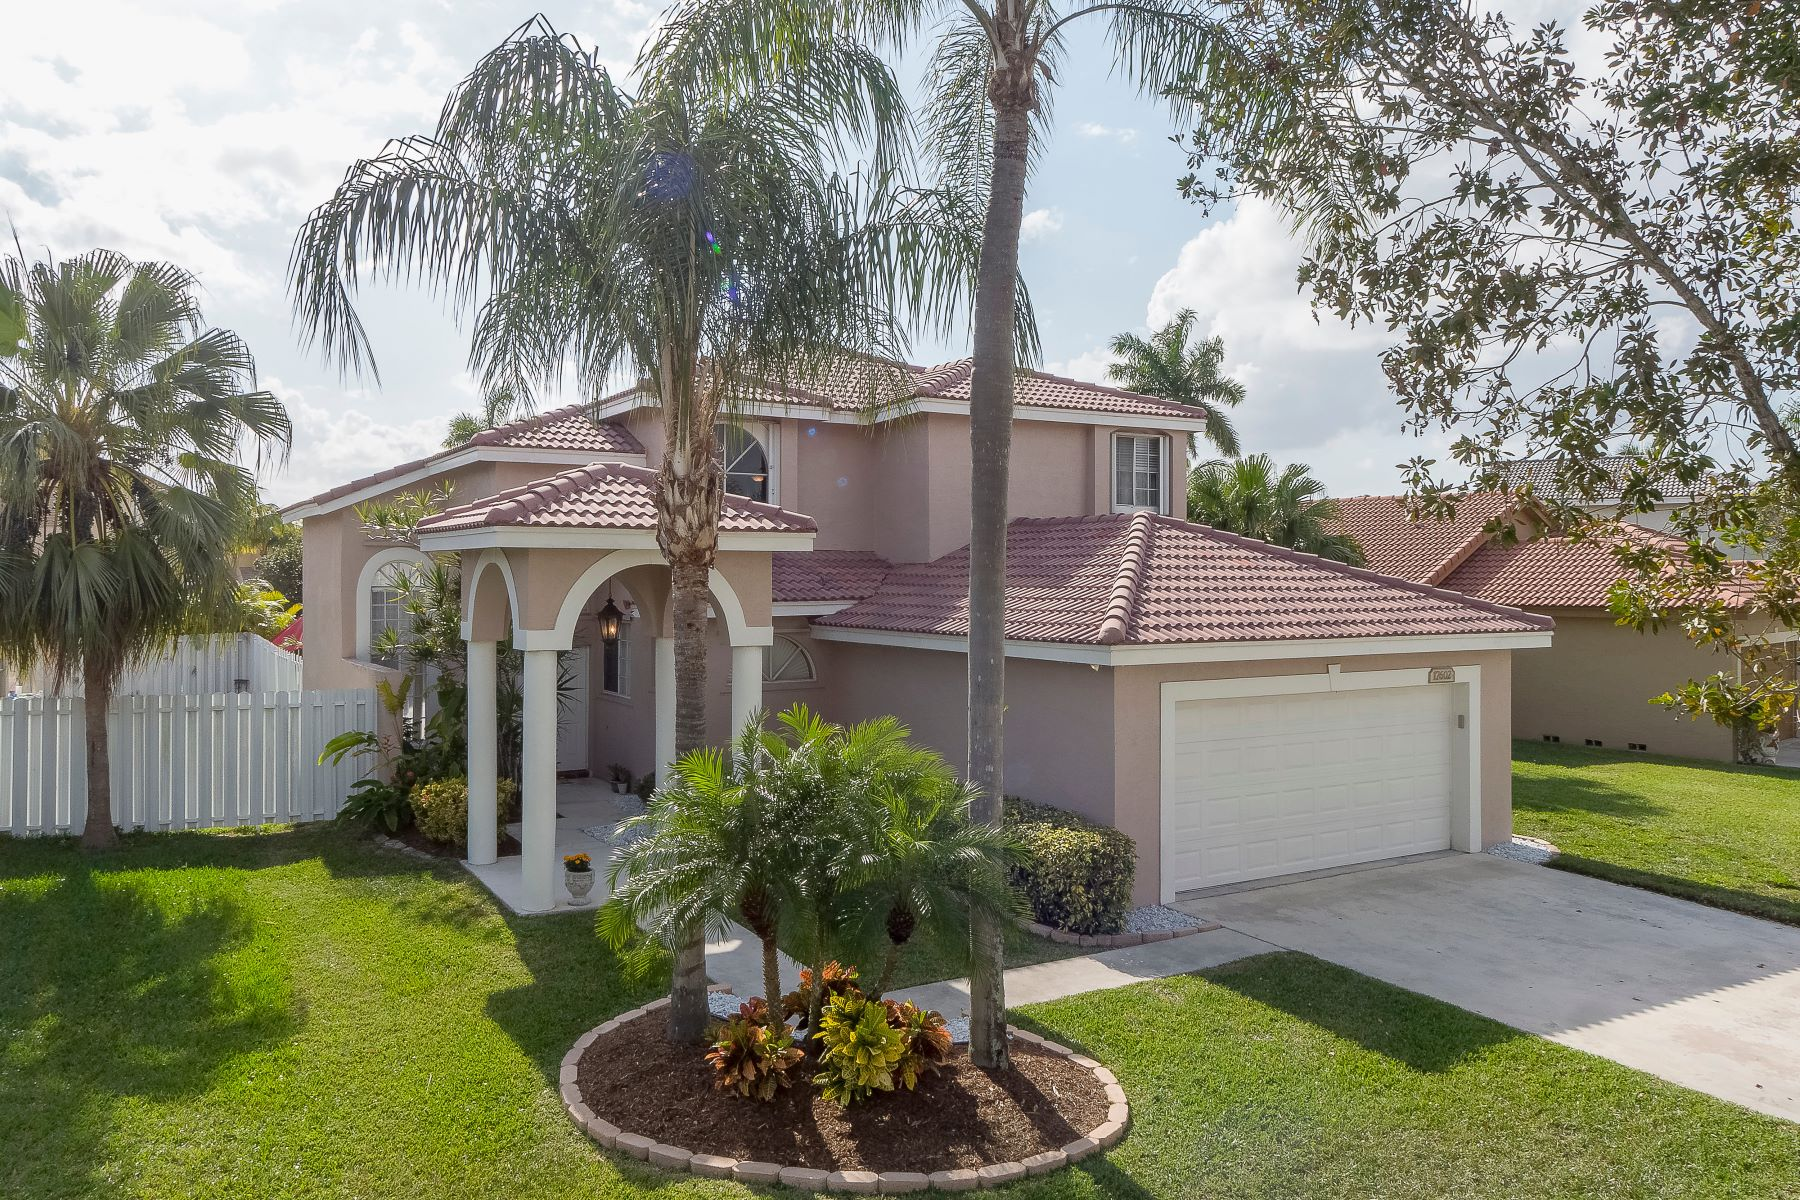 Single Family Homes for Sale at 17602 Sw 8th Ct Pembroke Pines, Florida 33029 United States